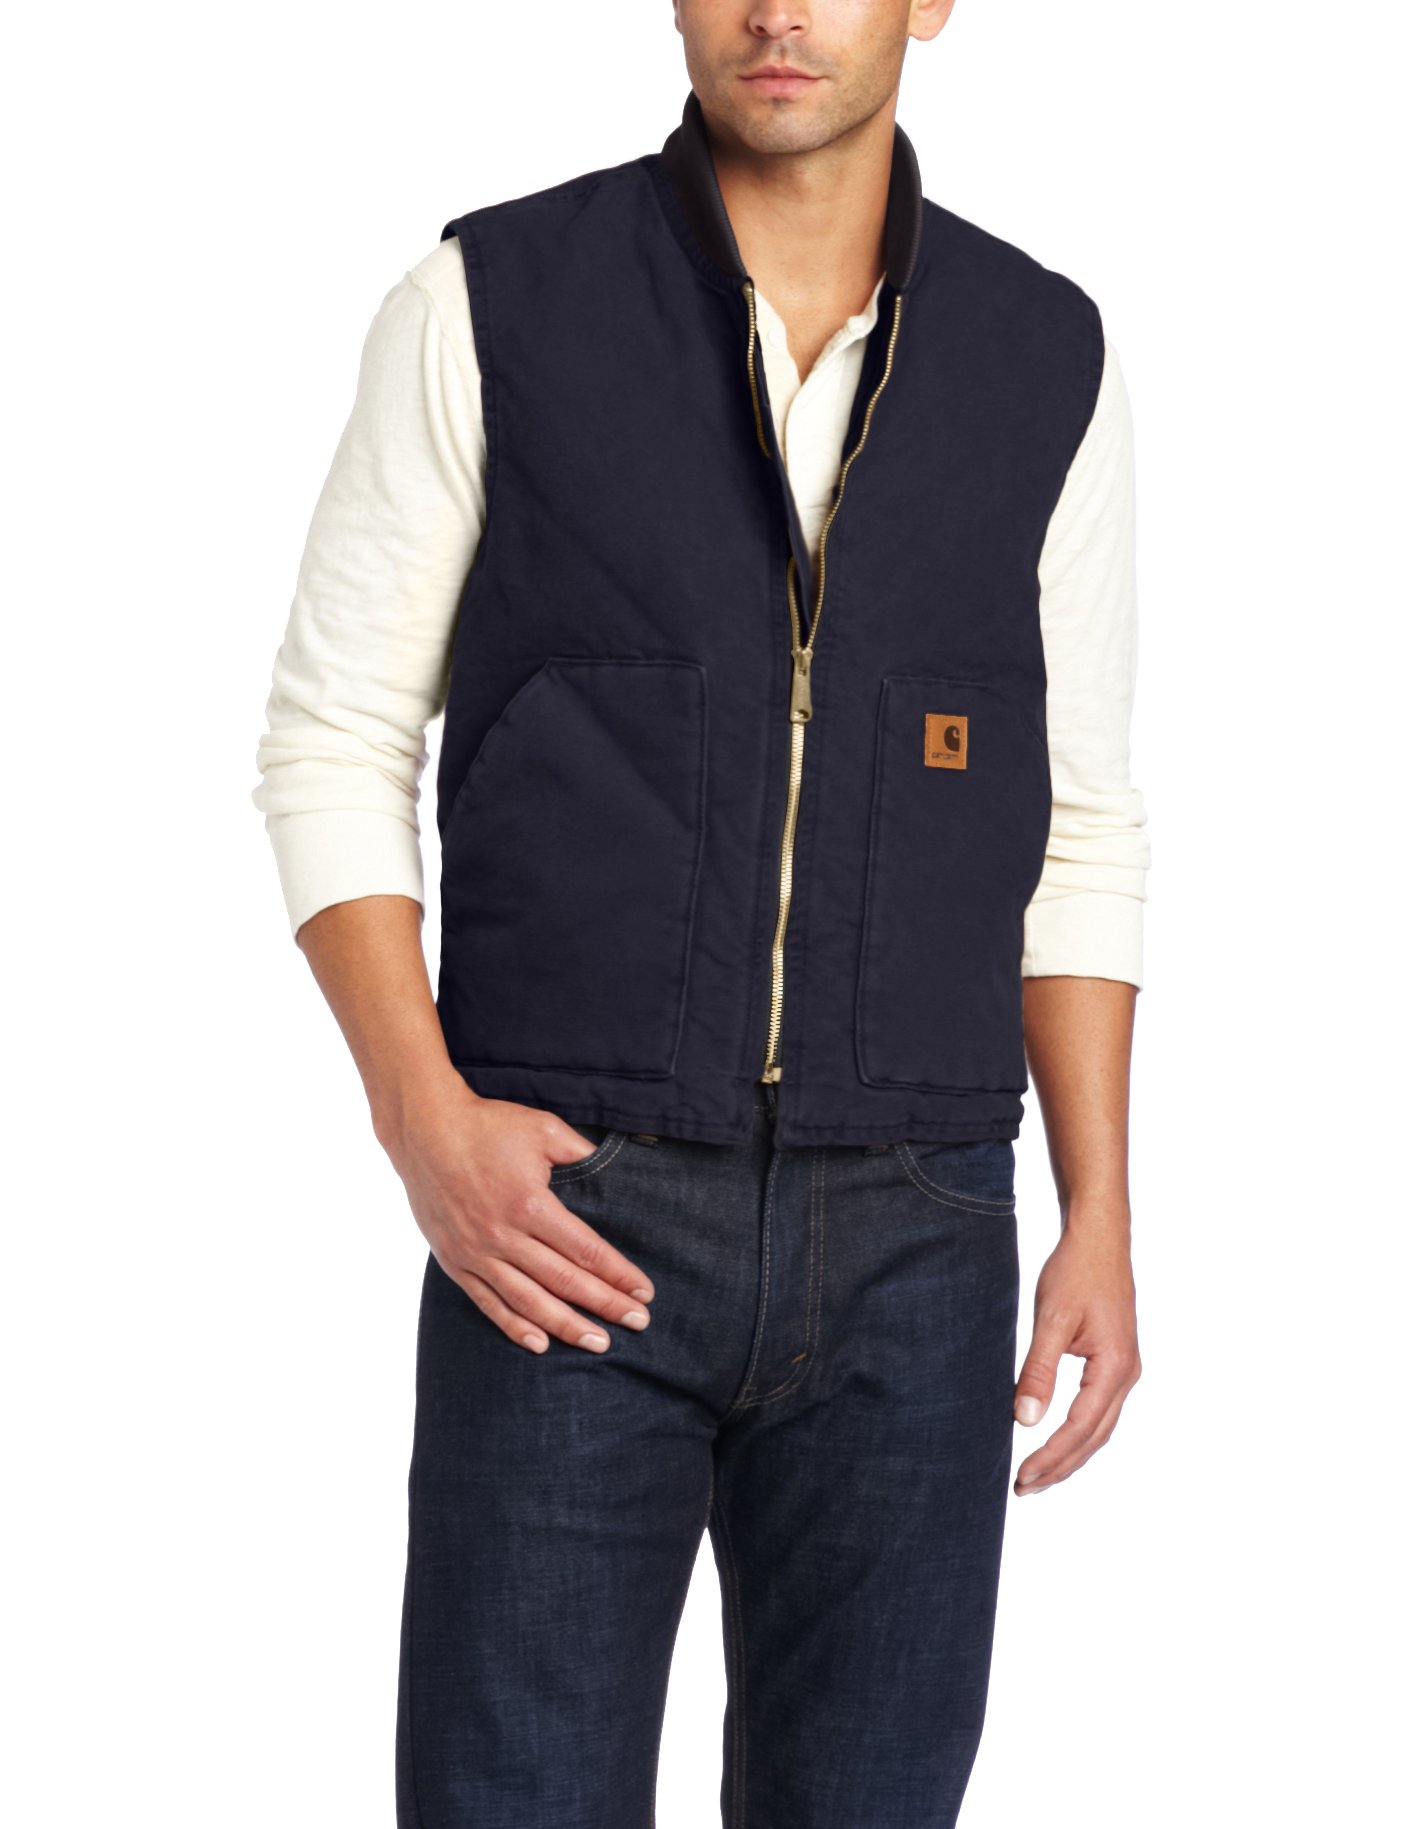 Carhartt Men's Sandstone Vest Arctic Quilt Lined,Midnight,Large by Carhartt